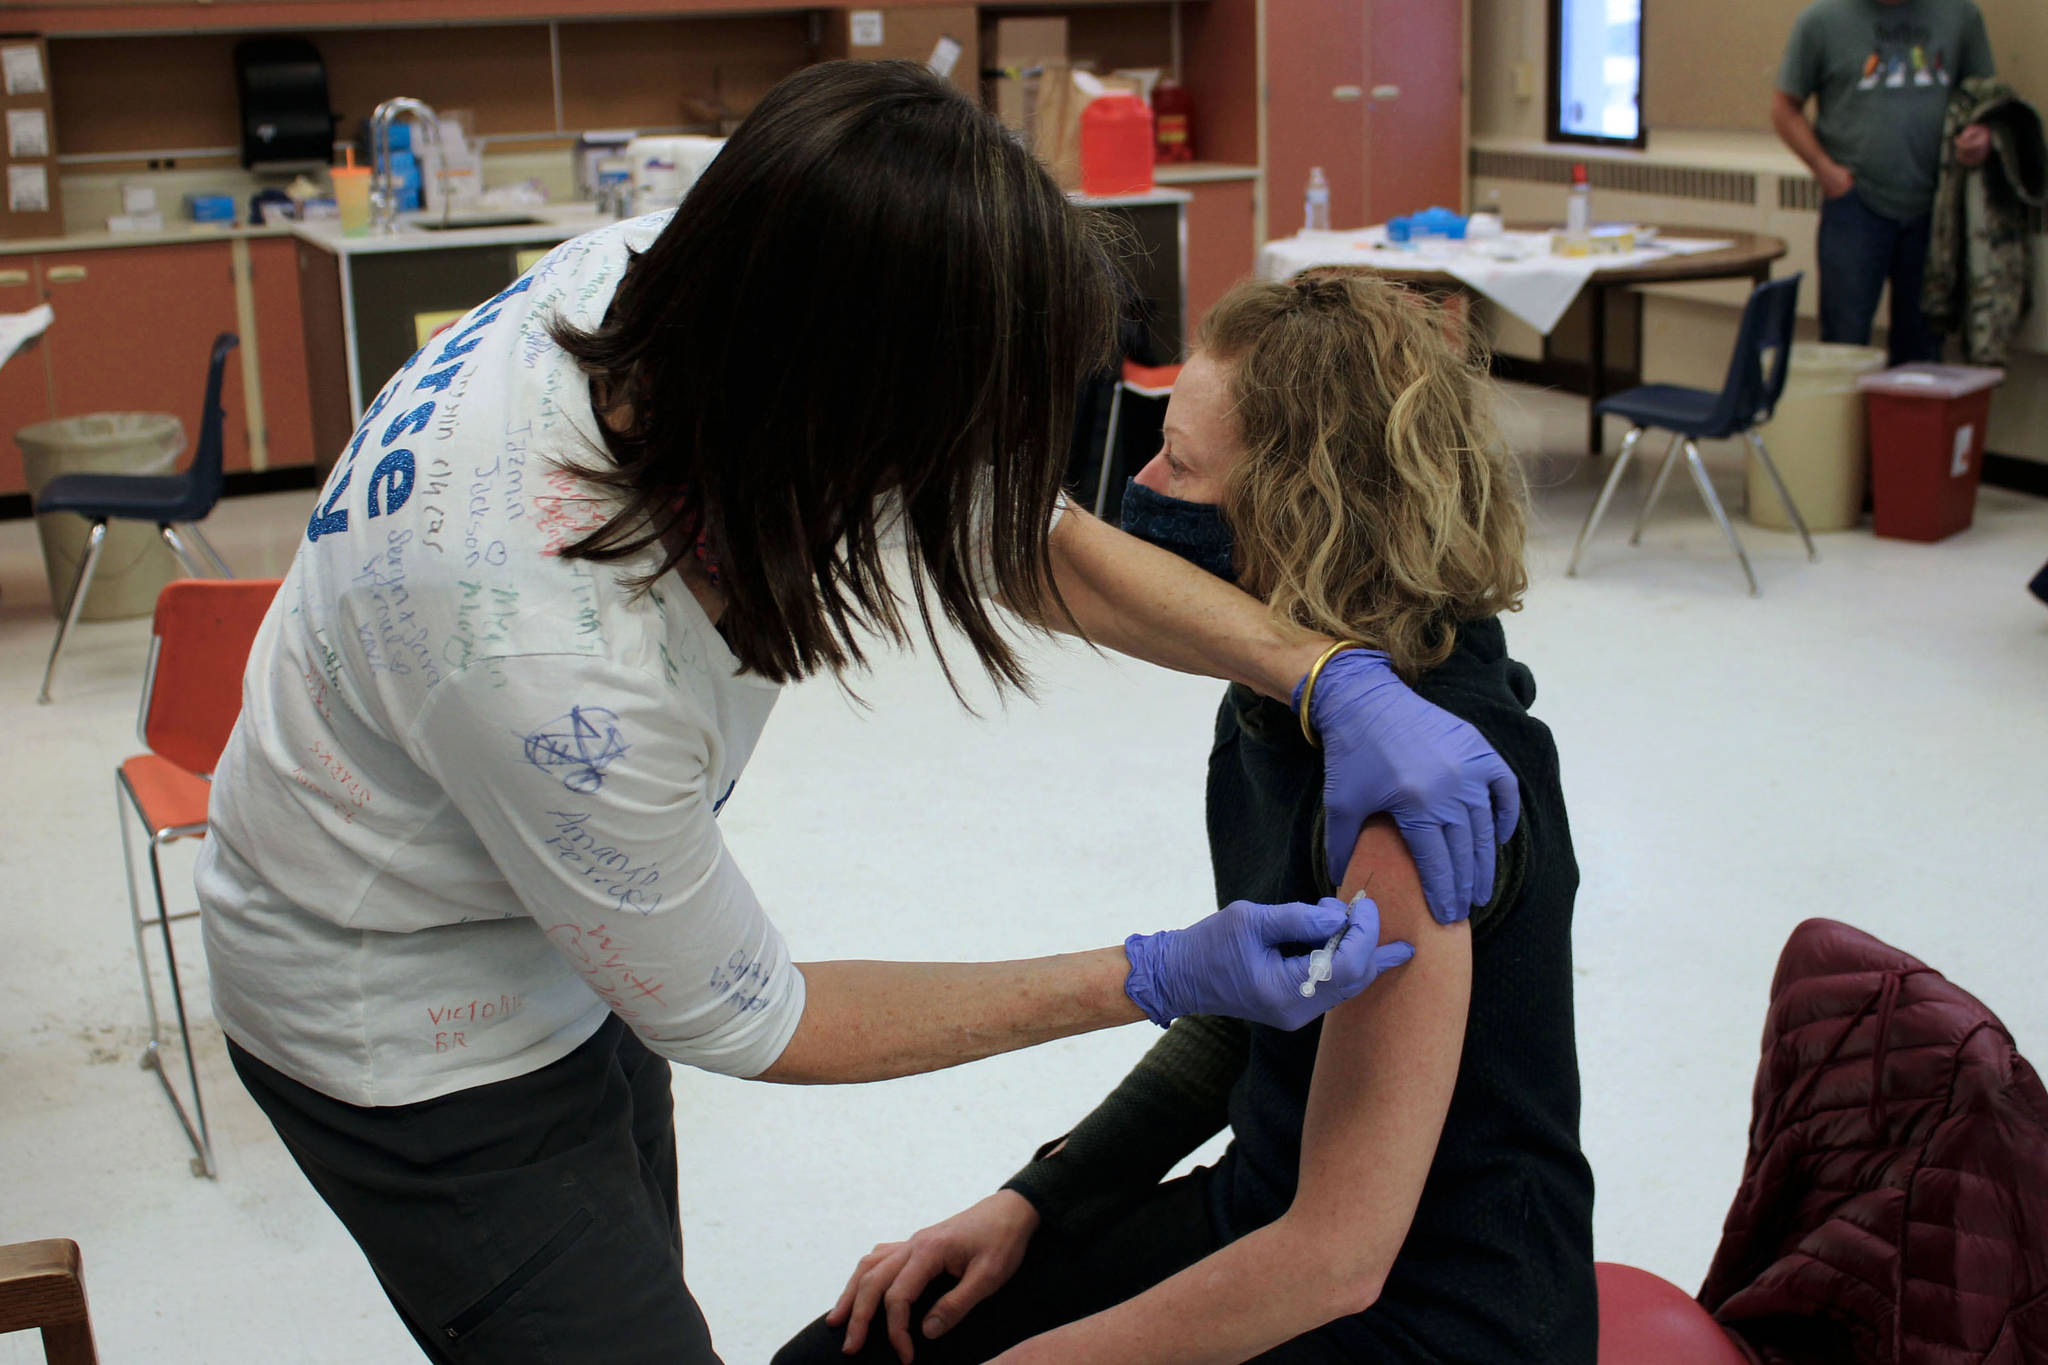 Tracy Silta (left) administers a dose of a COVID-19 vaccine to Melissa Linton during a vaccine clinic at Soldotna Prep School on Friday, Feb. 26, 2021, in Soldotna, Alaska. (Ashlyn O'Hara/Peninsula Clarion)